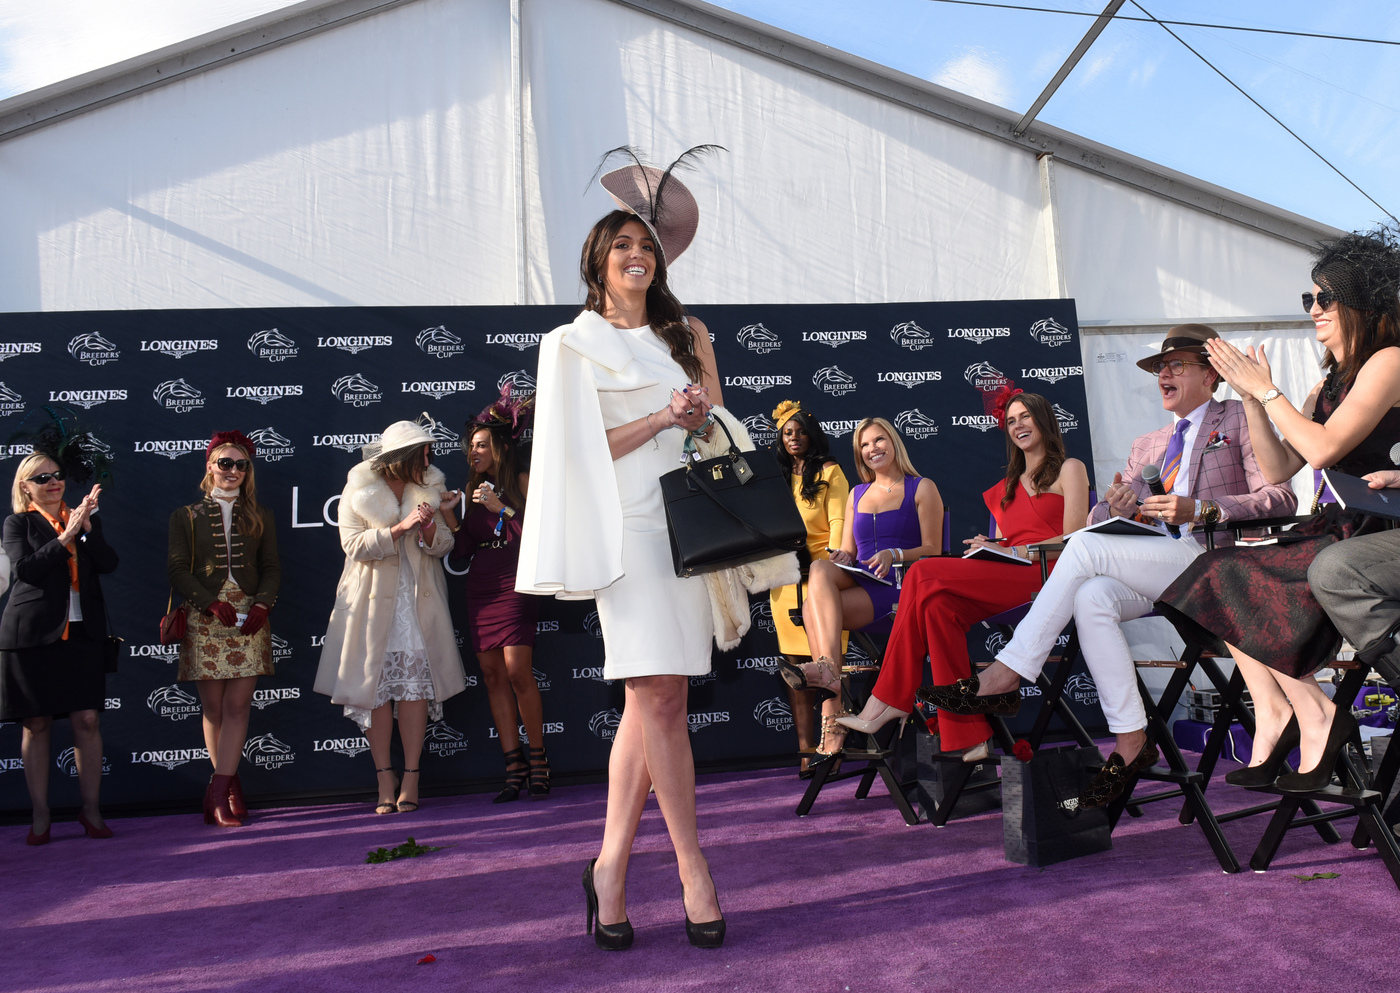 Longines Flat Racing Event: Longines proudly times 2018 Breeders' Cup World Championships in Louisville 5